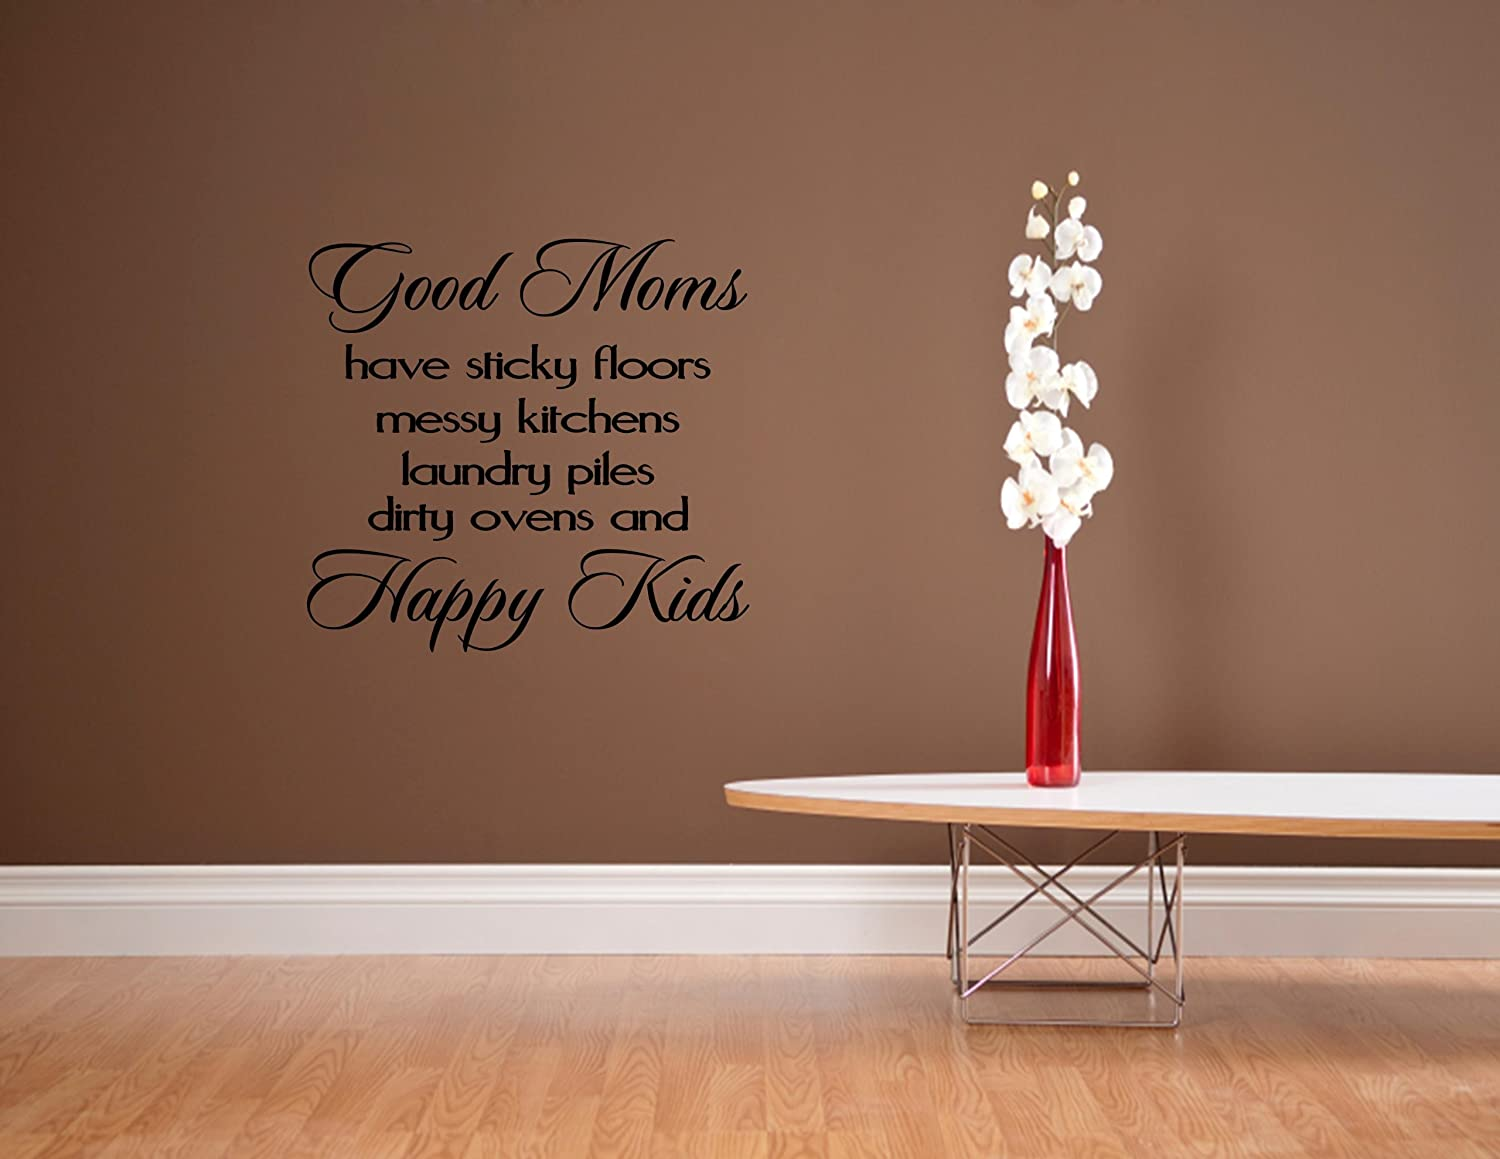 Good Moms have sticky floors messy kitchens laundry piles dirty ovens and Hap...